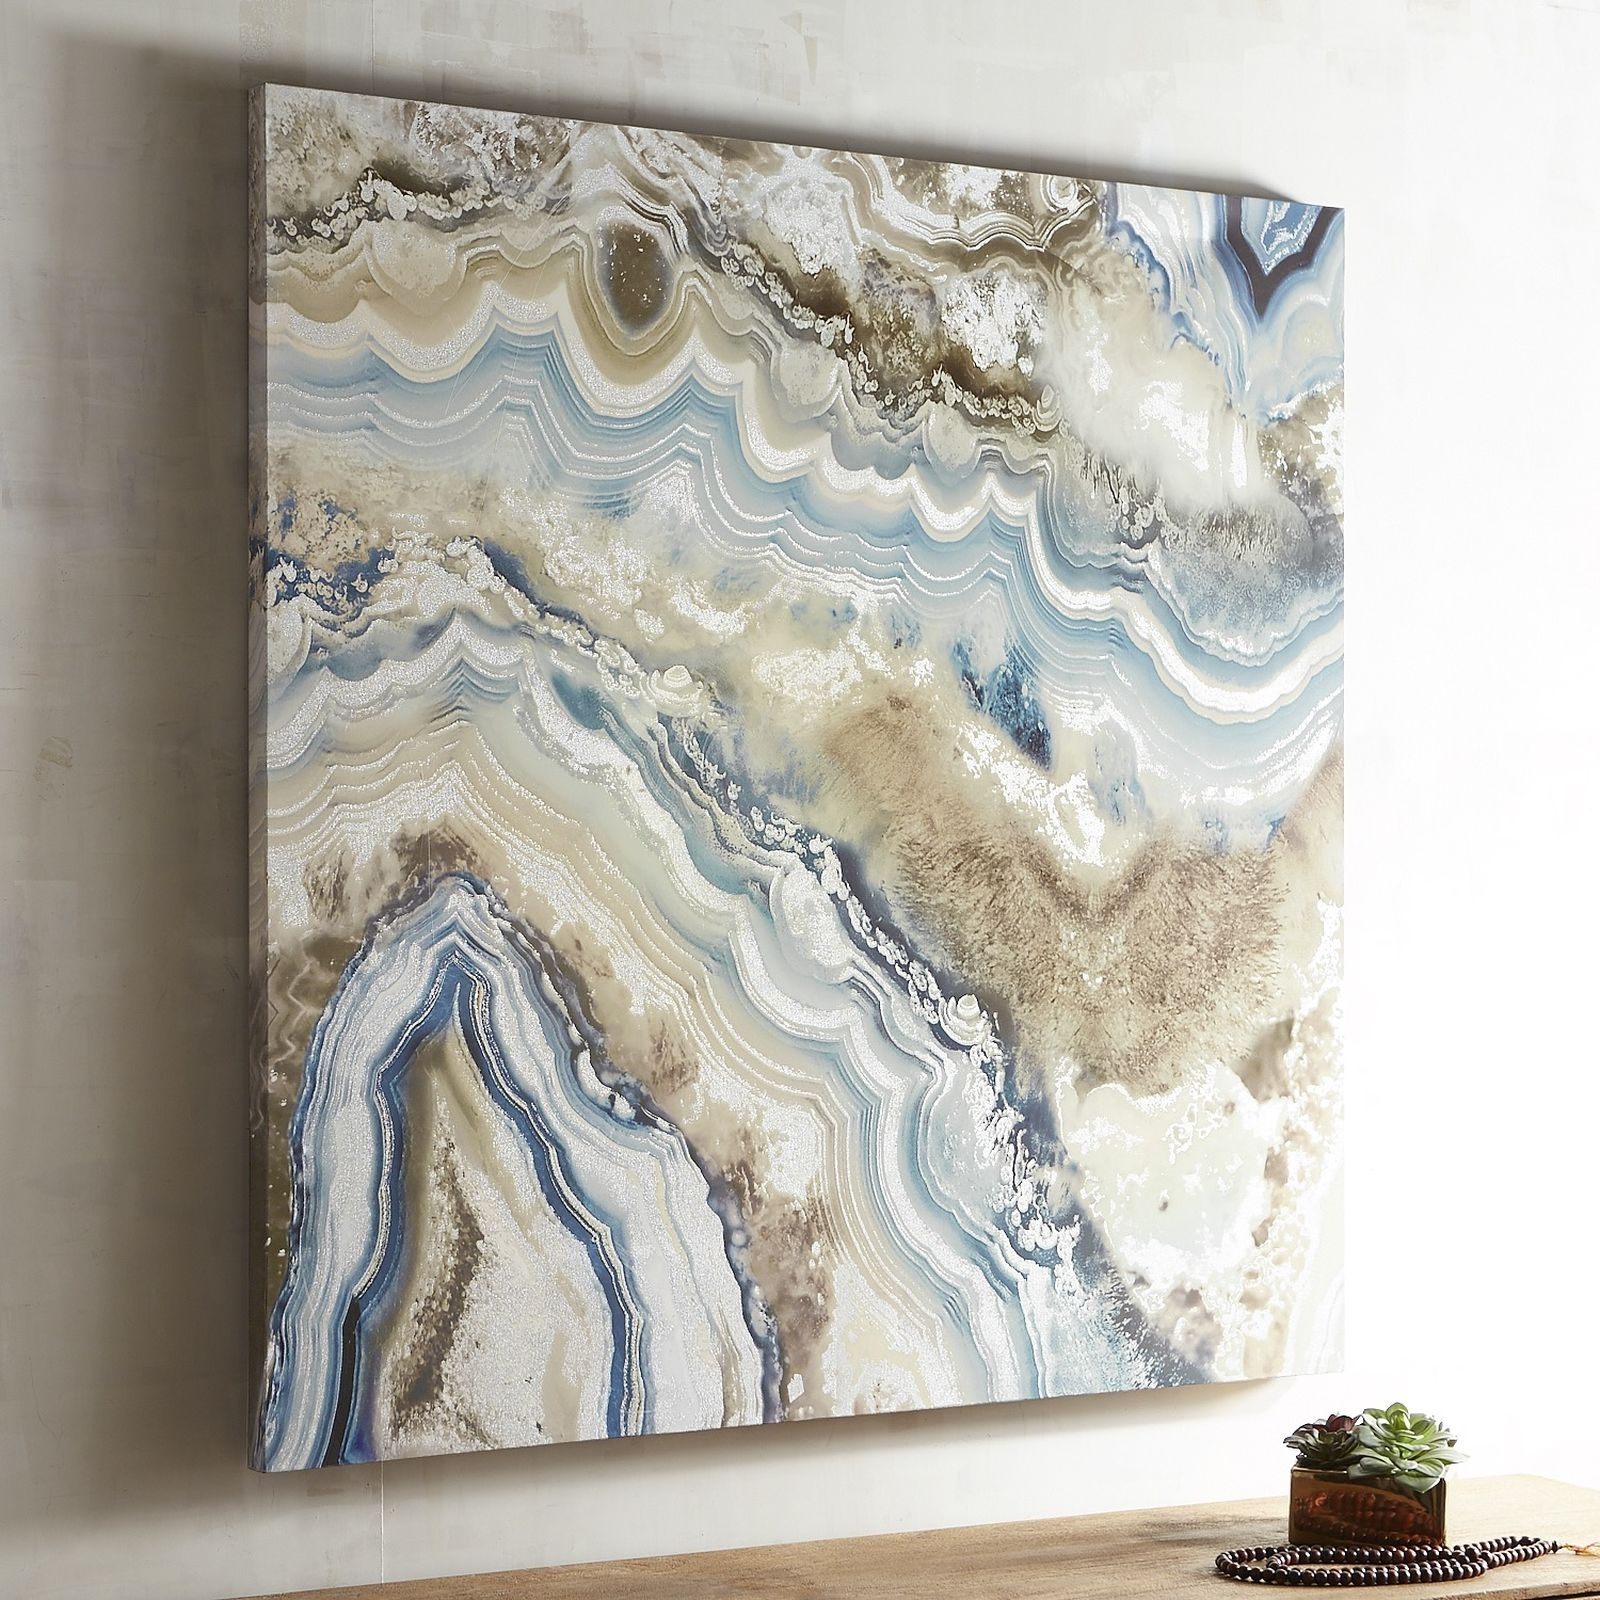 Agate Stones Are Characterizedthe Fineness Of Their Grain And Intended For Current Abstract Wall Art For Bedroom (View 20 of 21)